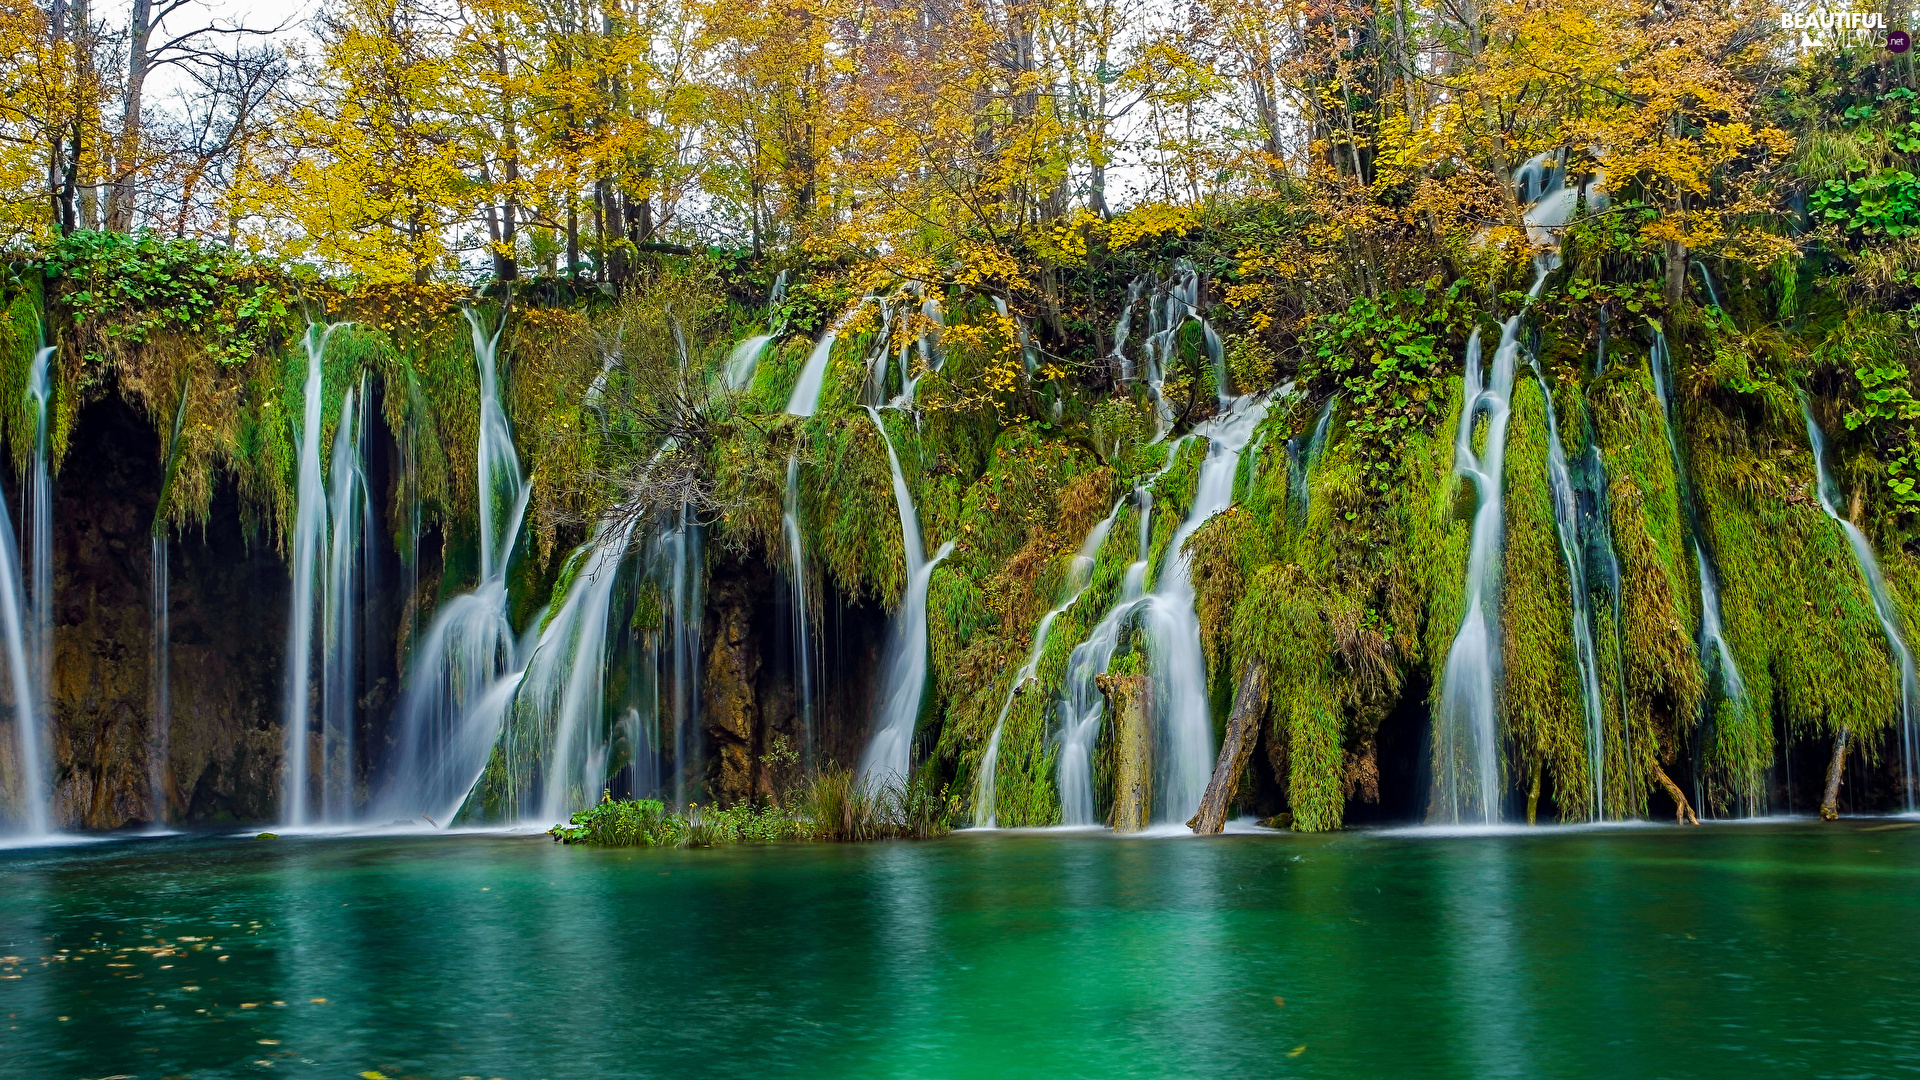 rocks, trees, Coartia, viewes, Plitvice Lakes National Park, mossy, waterfall, autumn